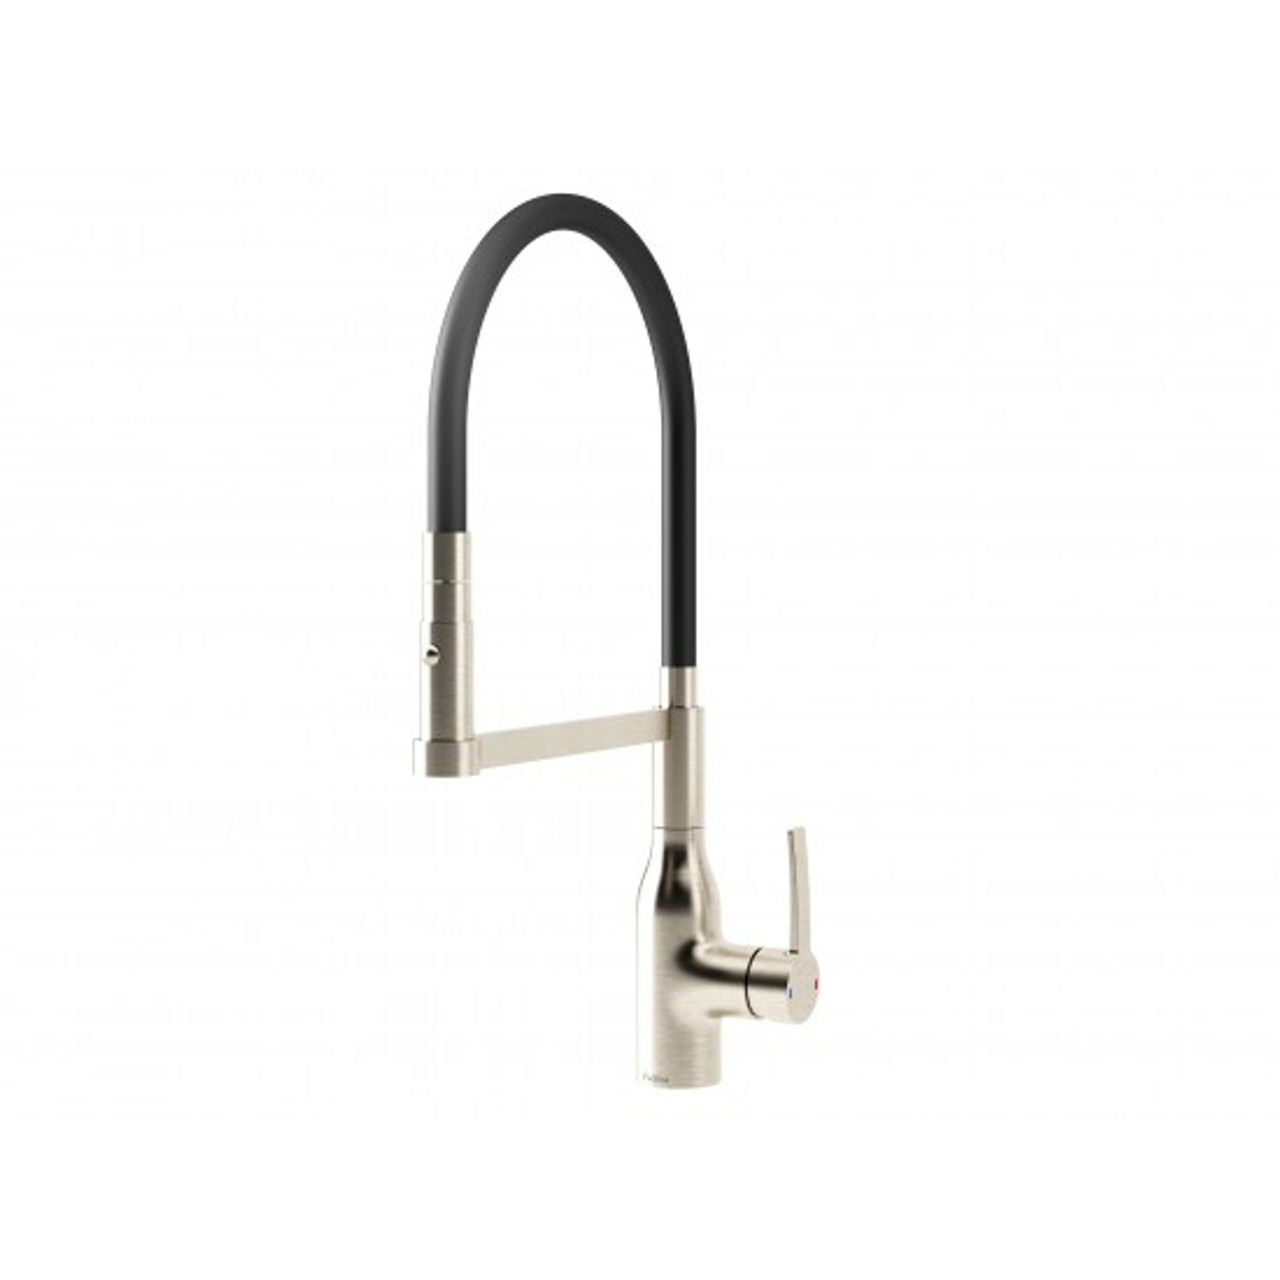 Kalia KACHET Single Handle Kitchen Faucet Pull Down Spray